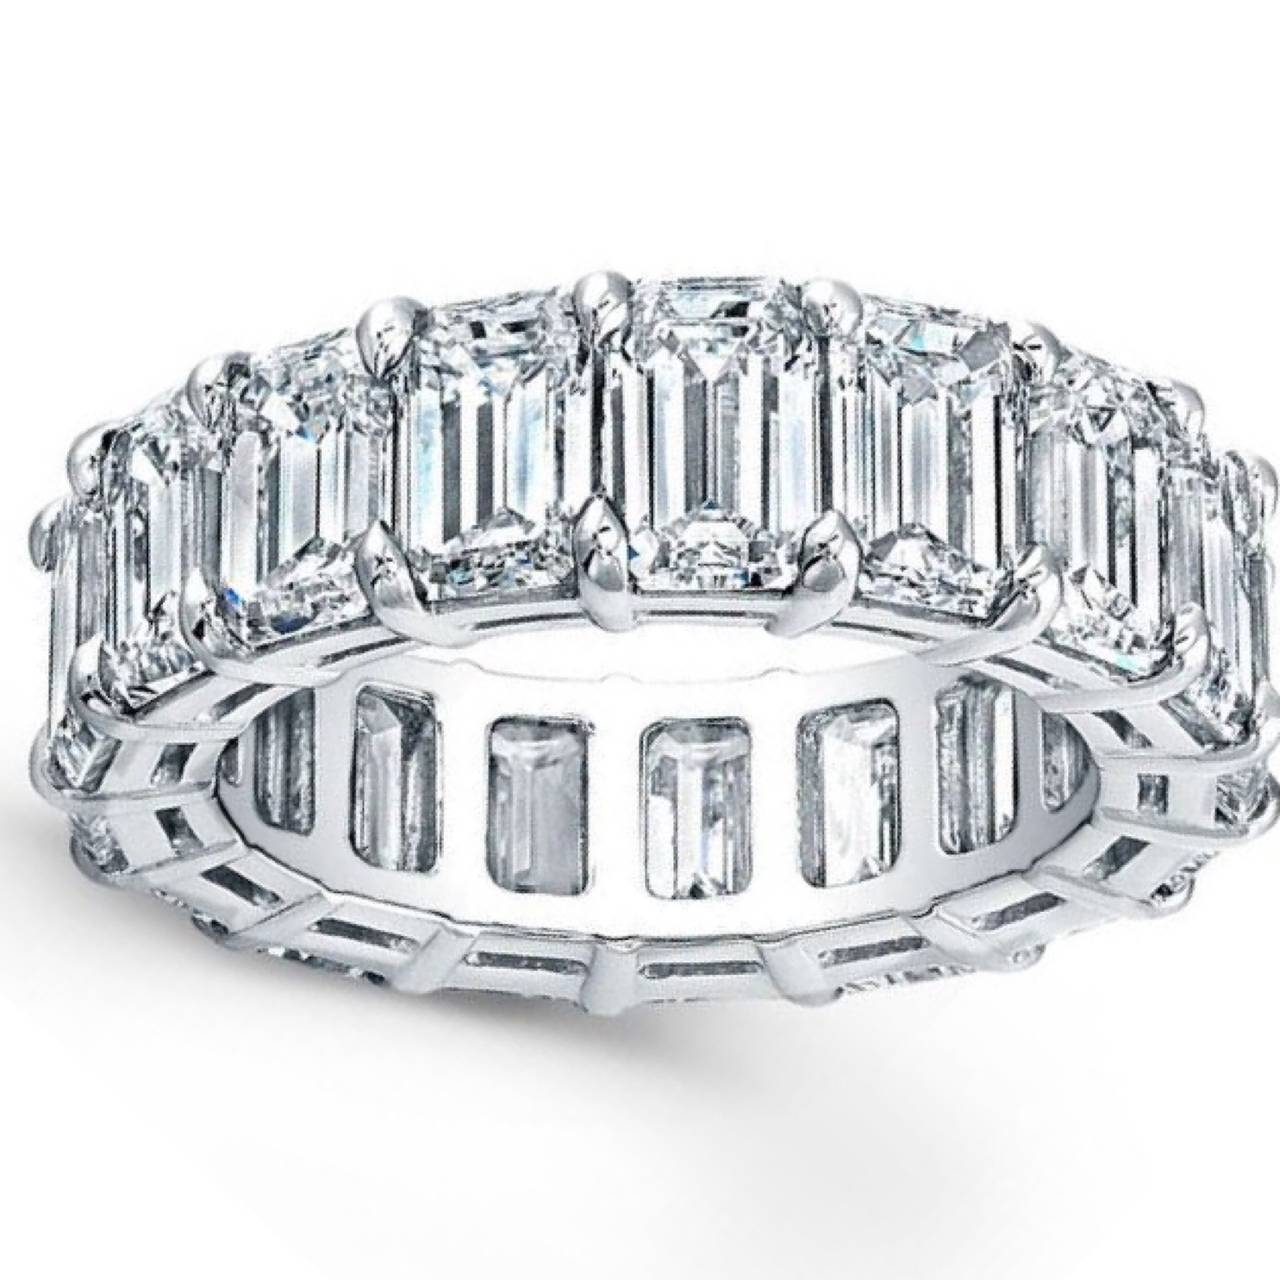 Emerald Cut Diamond Platinum Eternity Anniversary Band Ring At 1Stdibs Intended For Best And Newest Emerald Anniversary Rings (View 10 of 25)